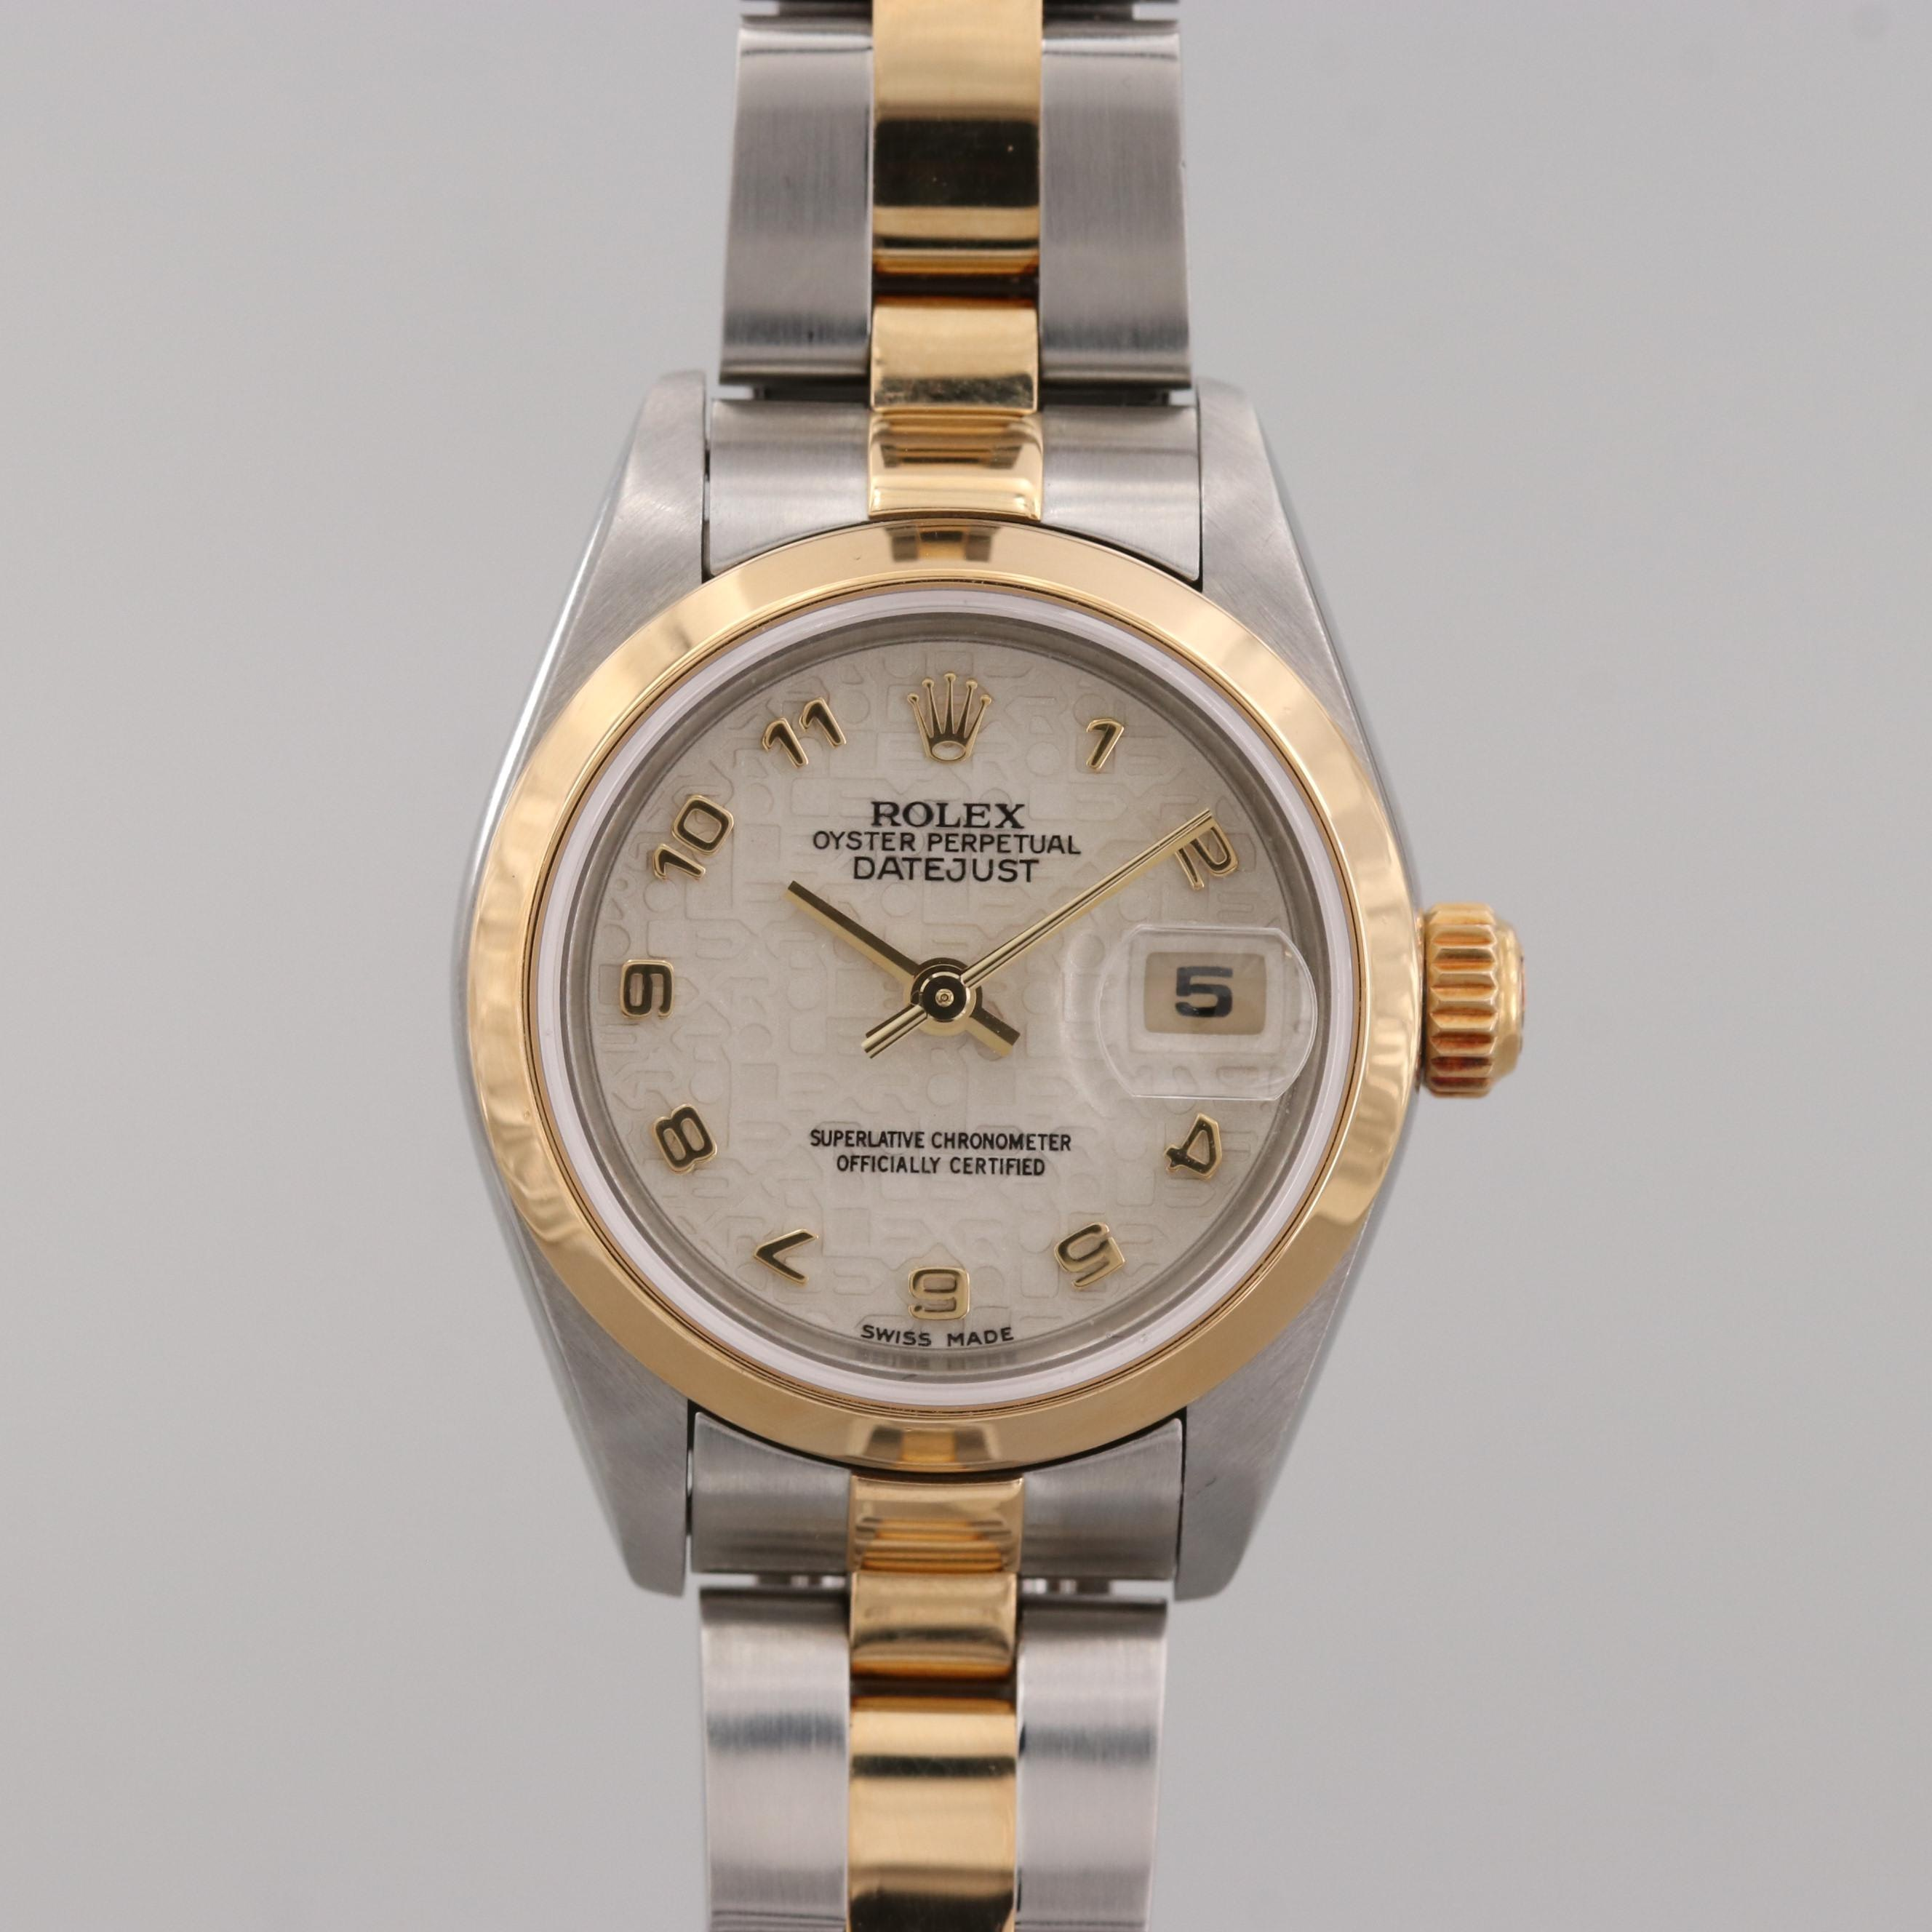 Rolex Datejust Stainless Steel and 18K Yellow Gold Automatic Wristwatch, 2002